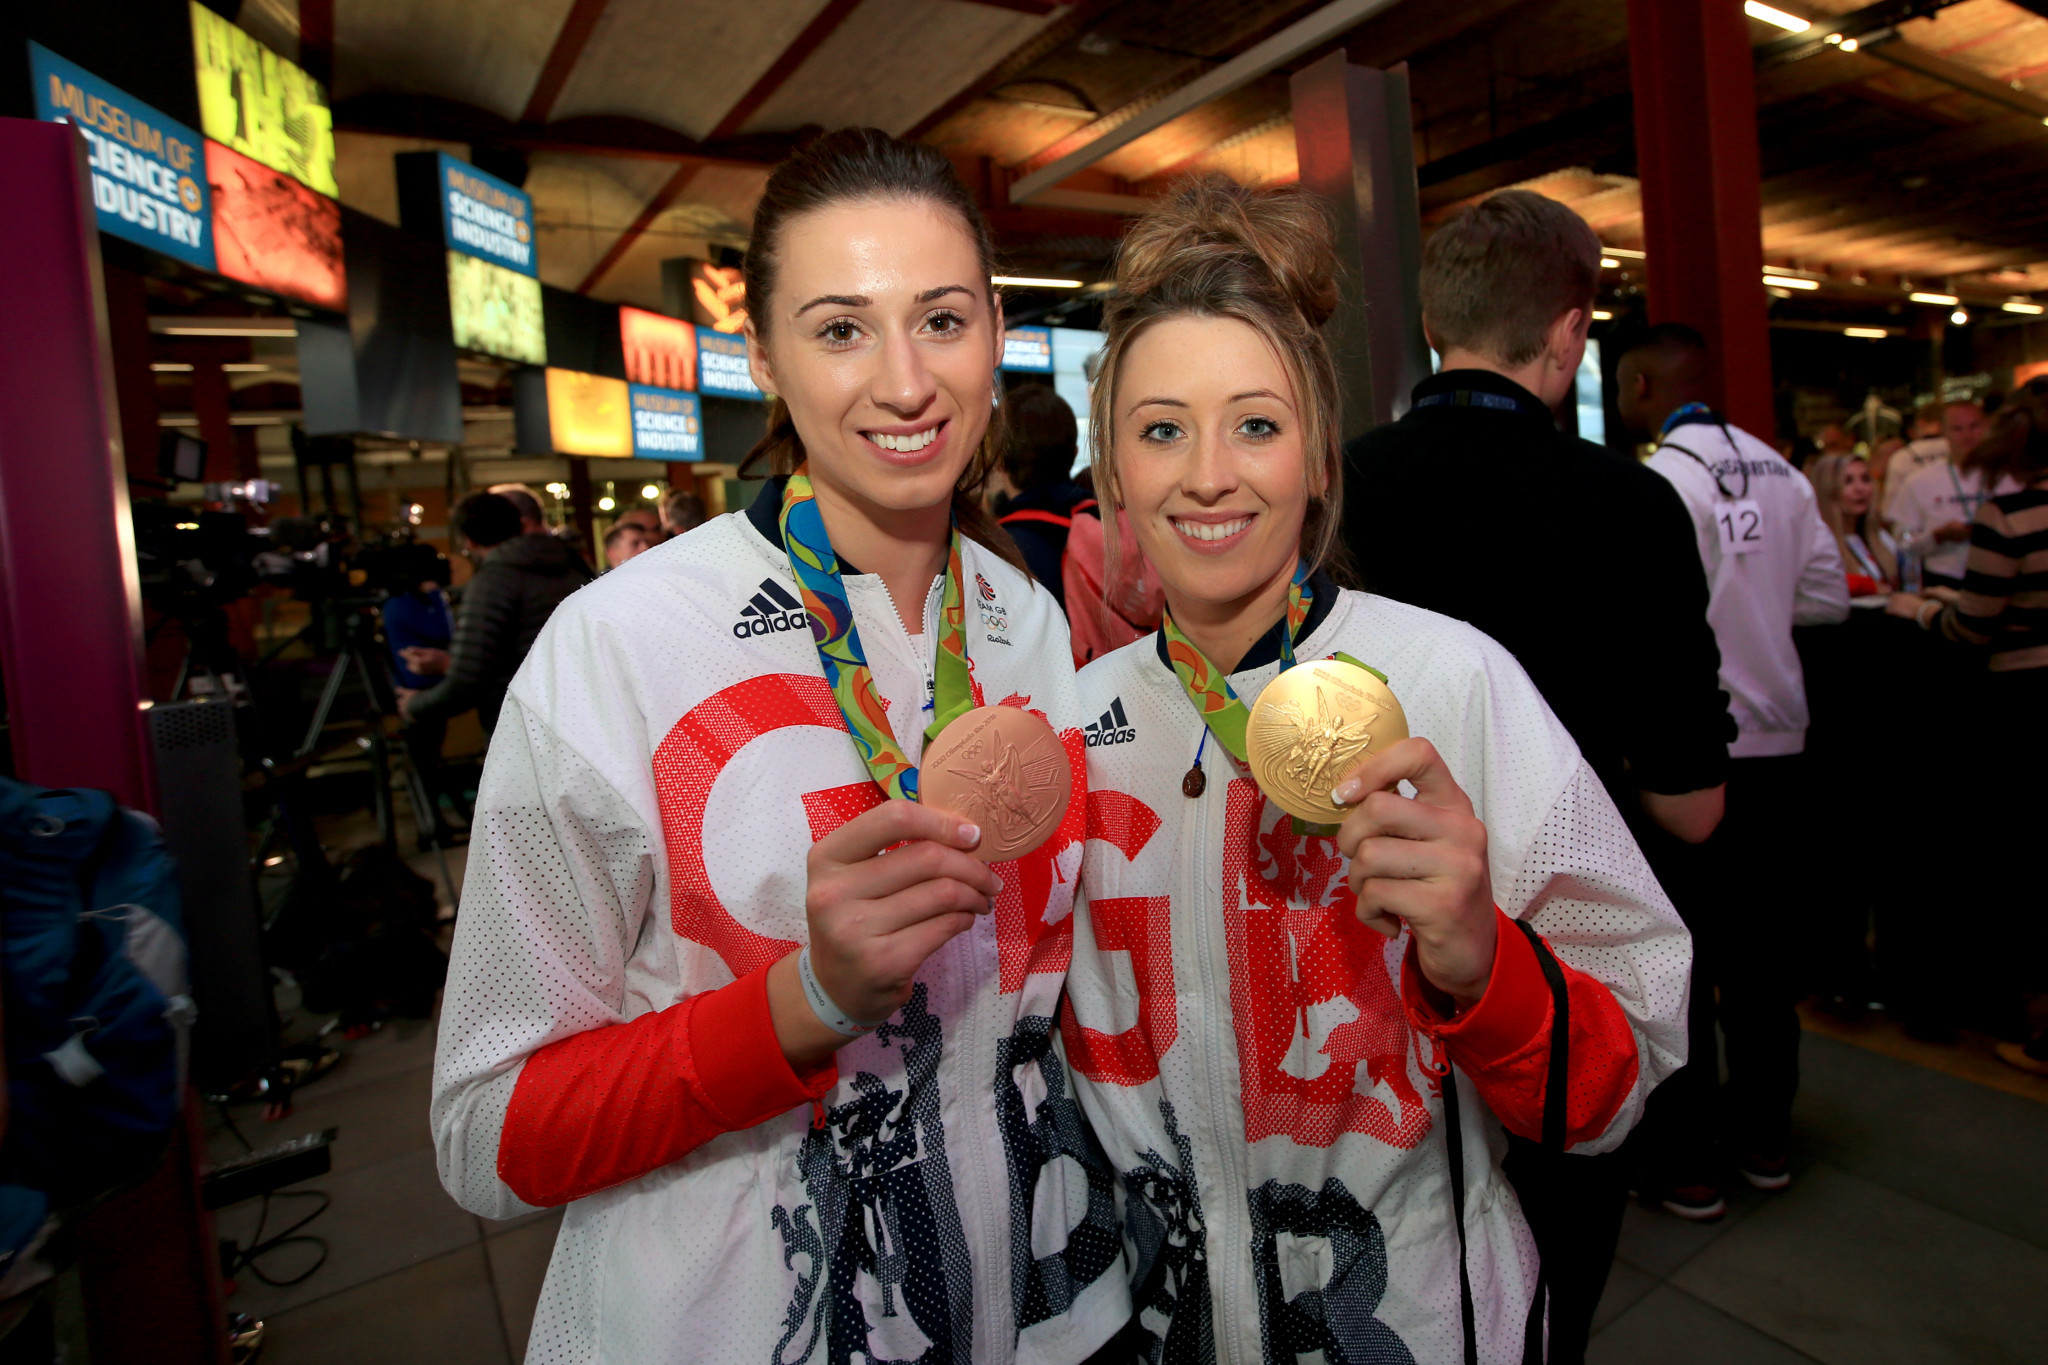 Jones and Walkden in British squad for European Taekwondo Championships